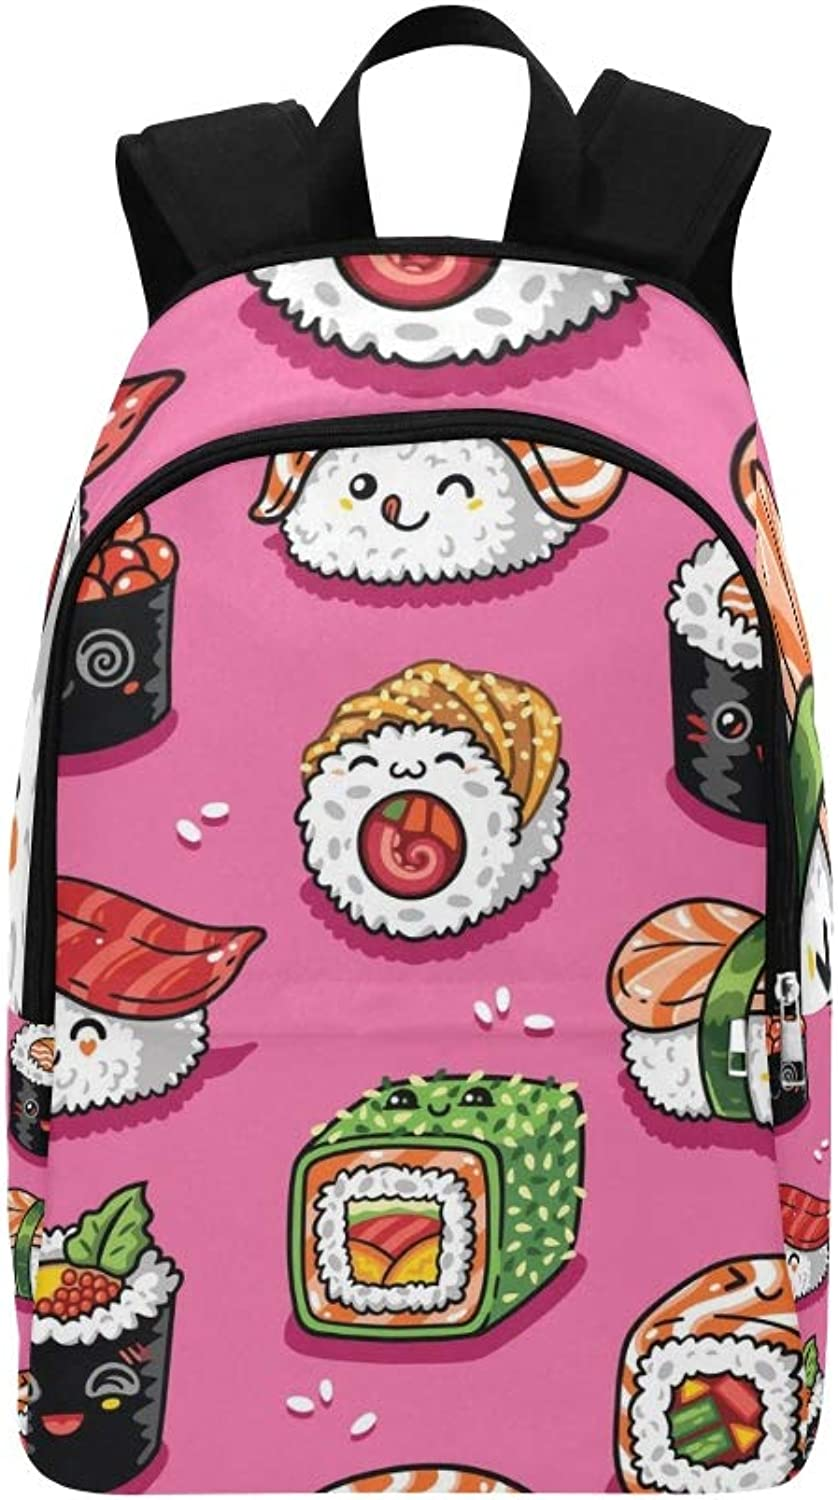 Cute Cartoon Rolls Sushi Casual Daypack Travel Bag College School Backpack for Mens and Women